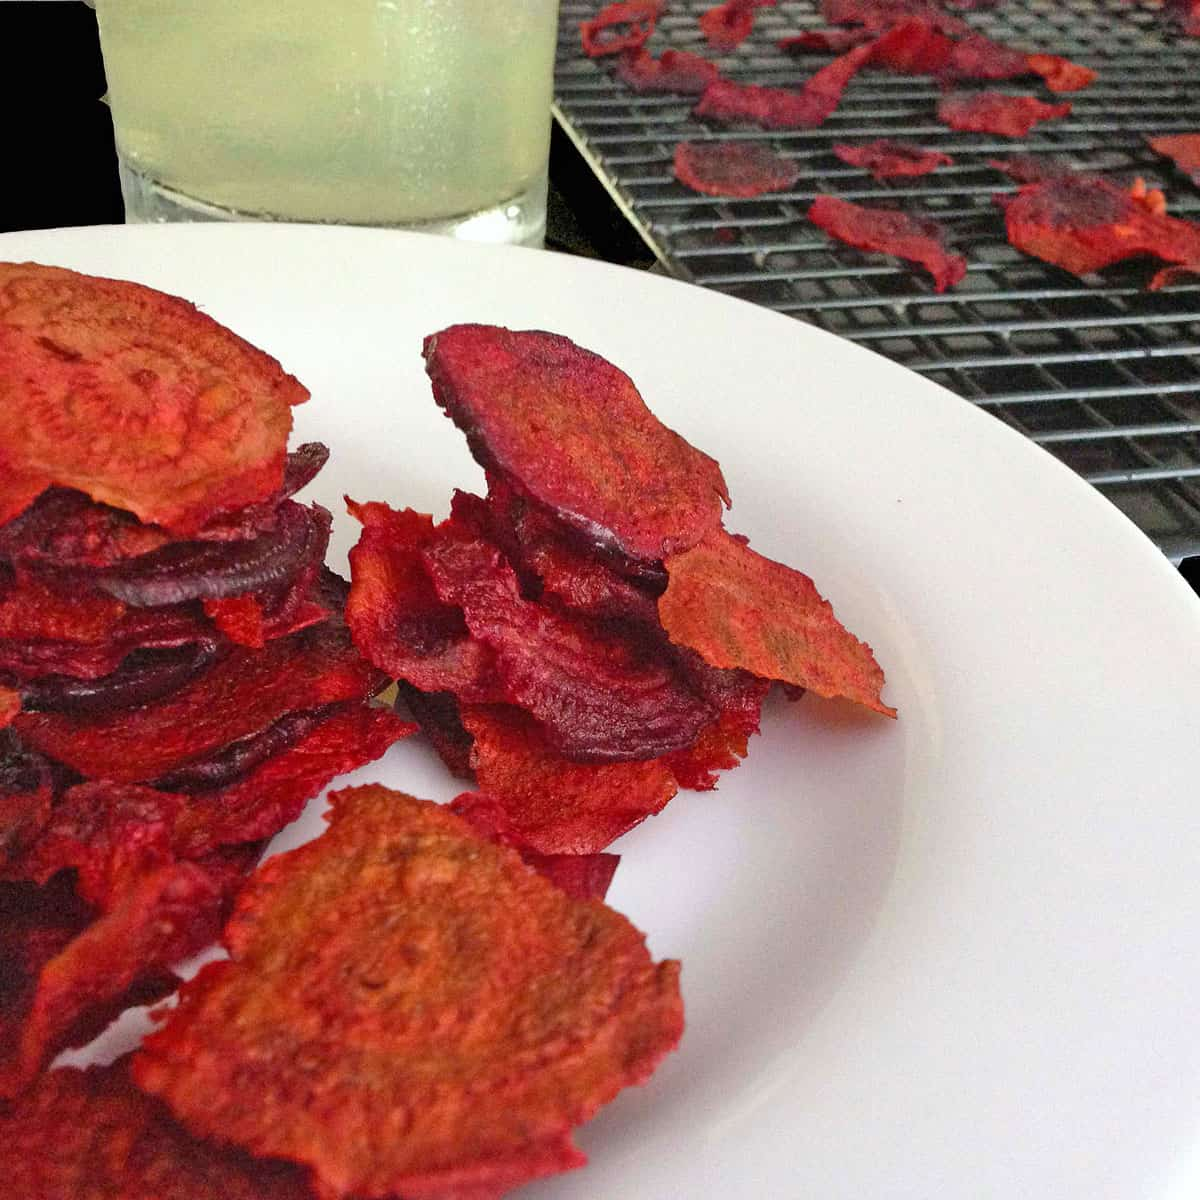 A plate of beet chips and a glass of lemonade.